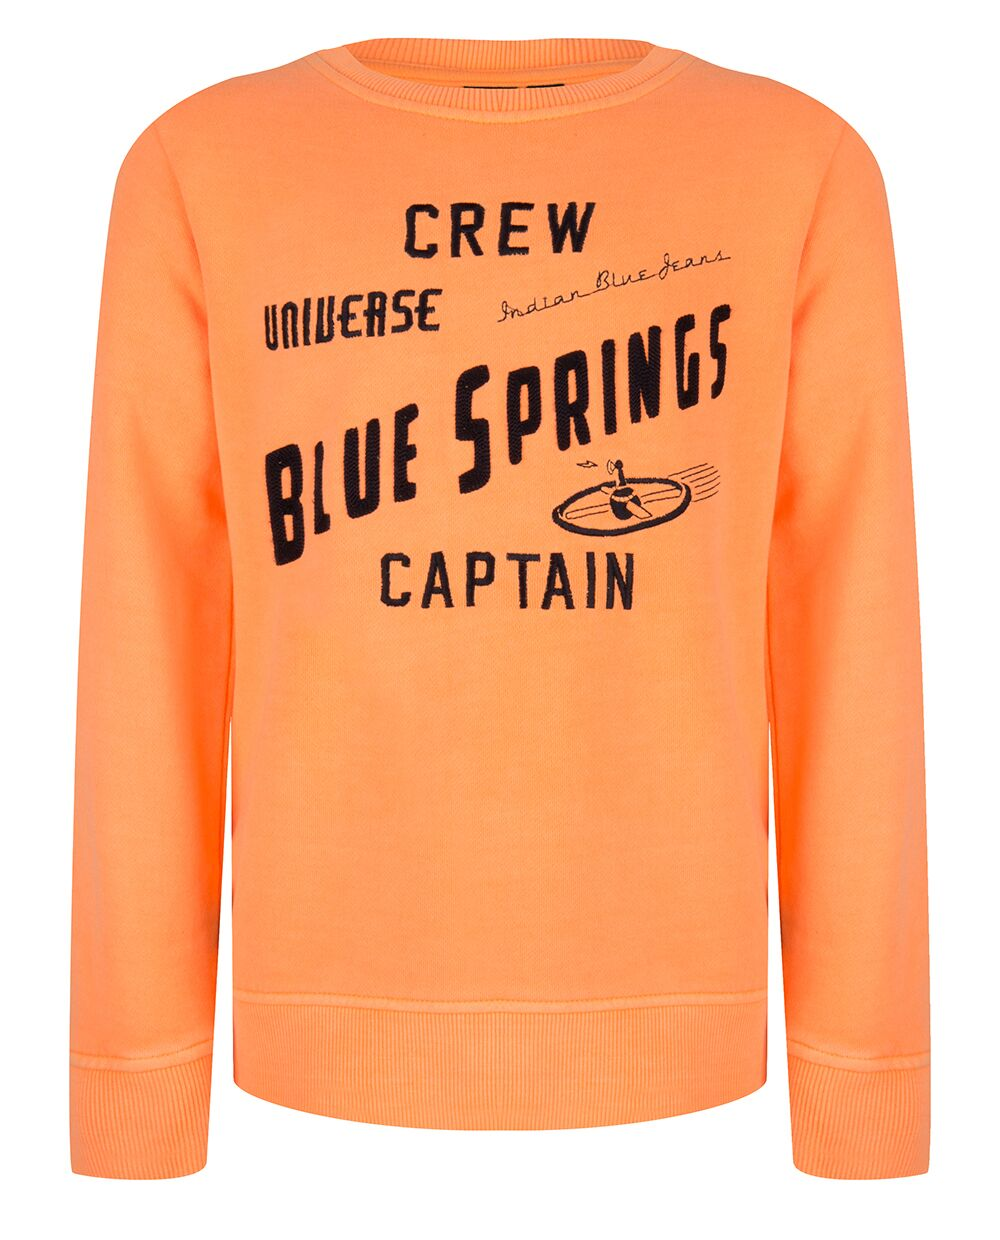 Indian Blue Jeans : Sweater Crew captain Sweater Outlet Kamélie.be